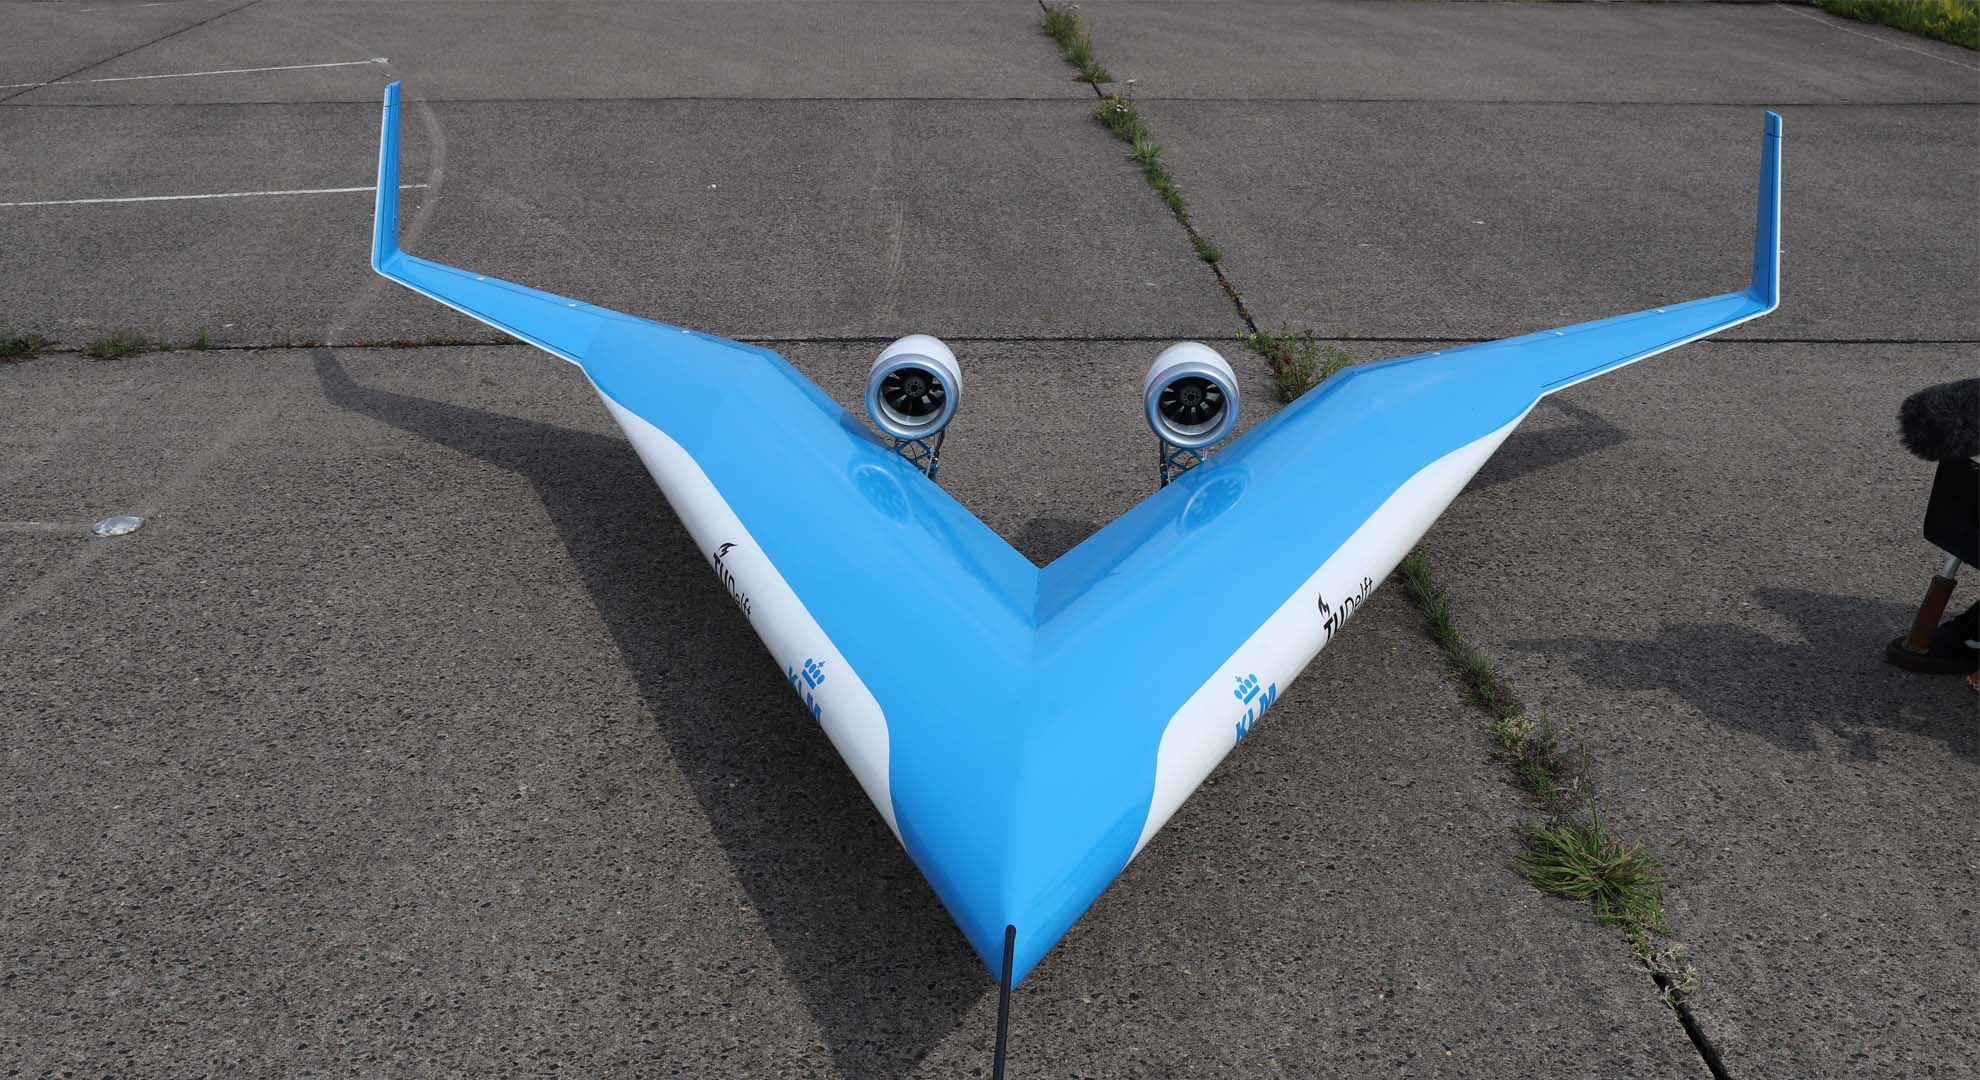 Flight-test of the Flying-V scale model. Malcolm Brown/TU Delft